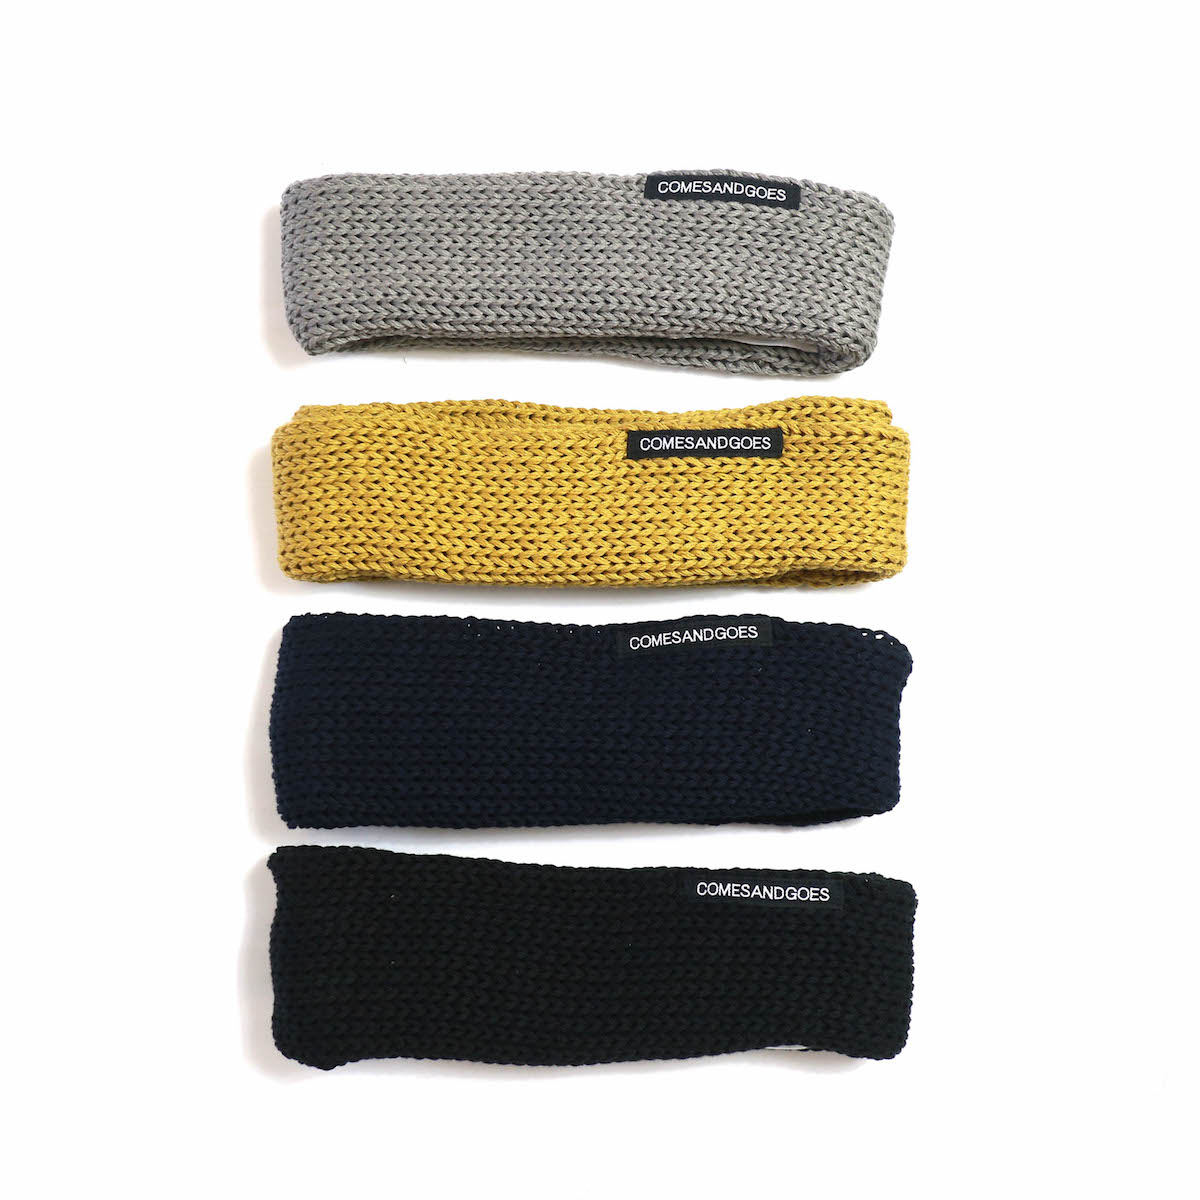 COMES AND GOES / NAME HEAD BAND